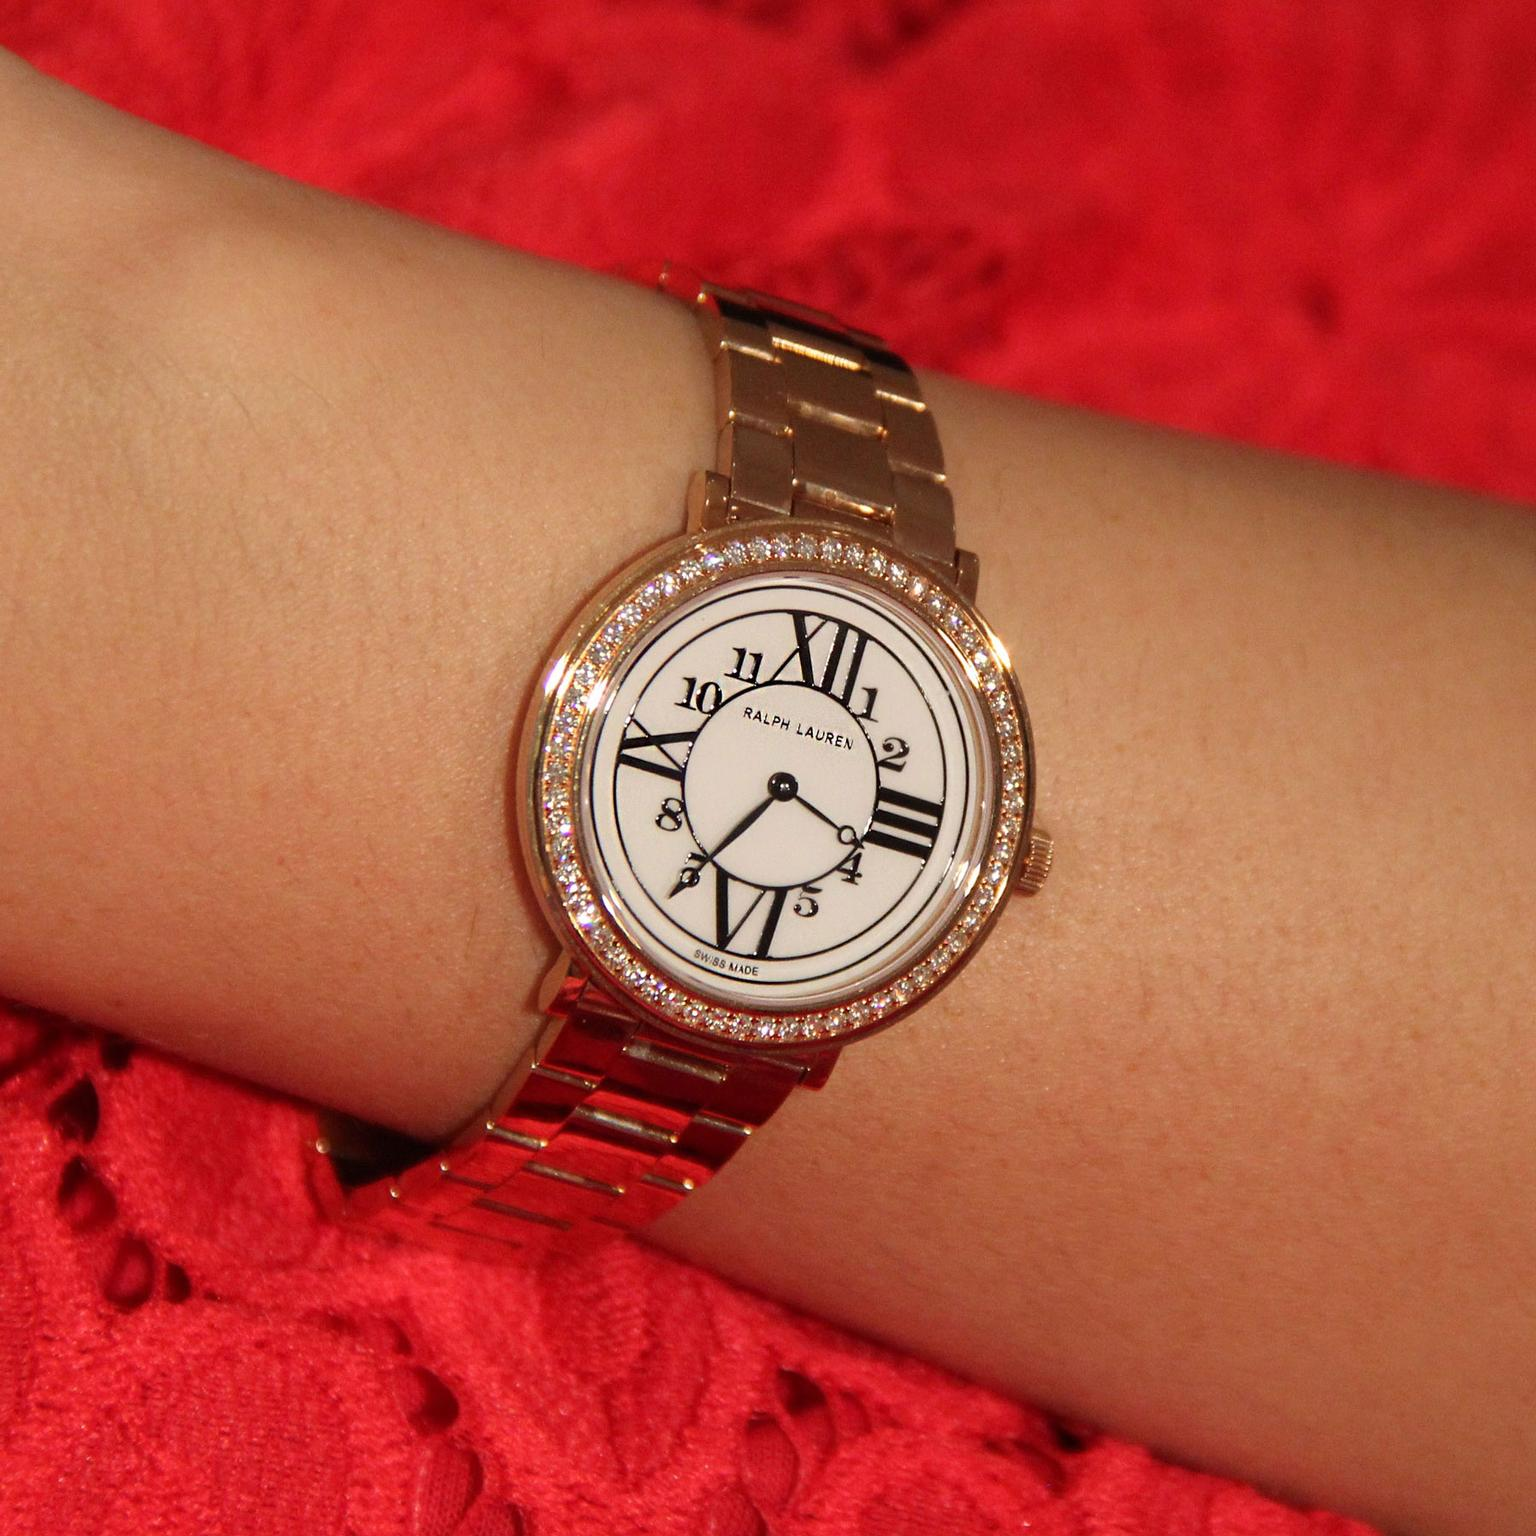 Ralph Lauren RL888 rose gold watch with diamonds